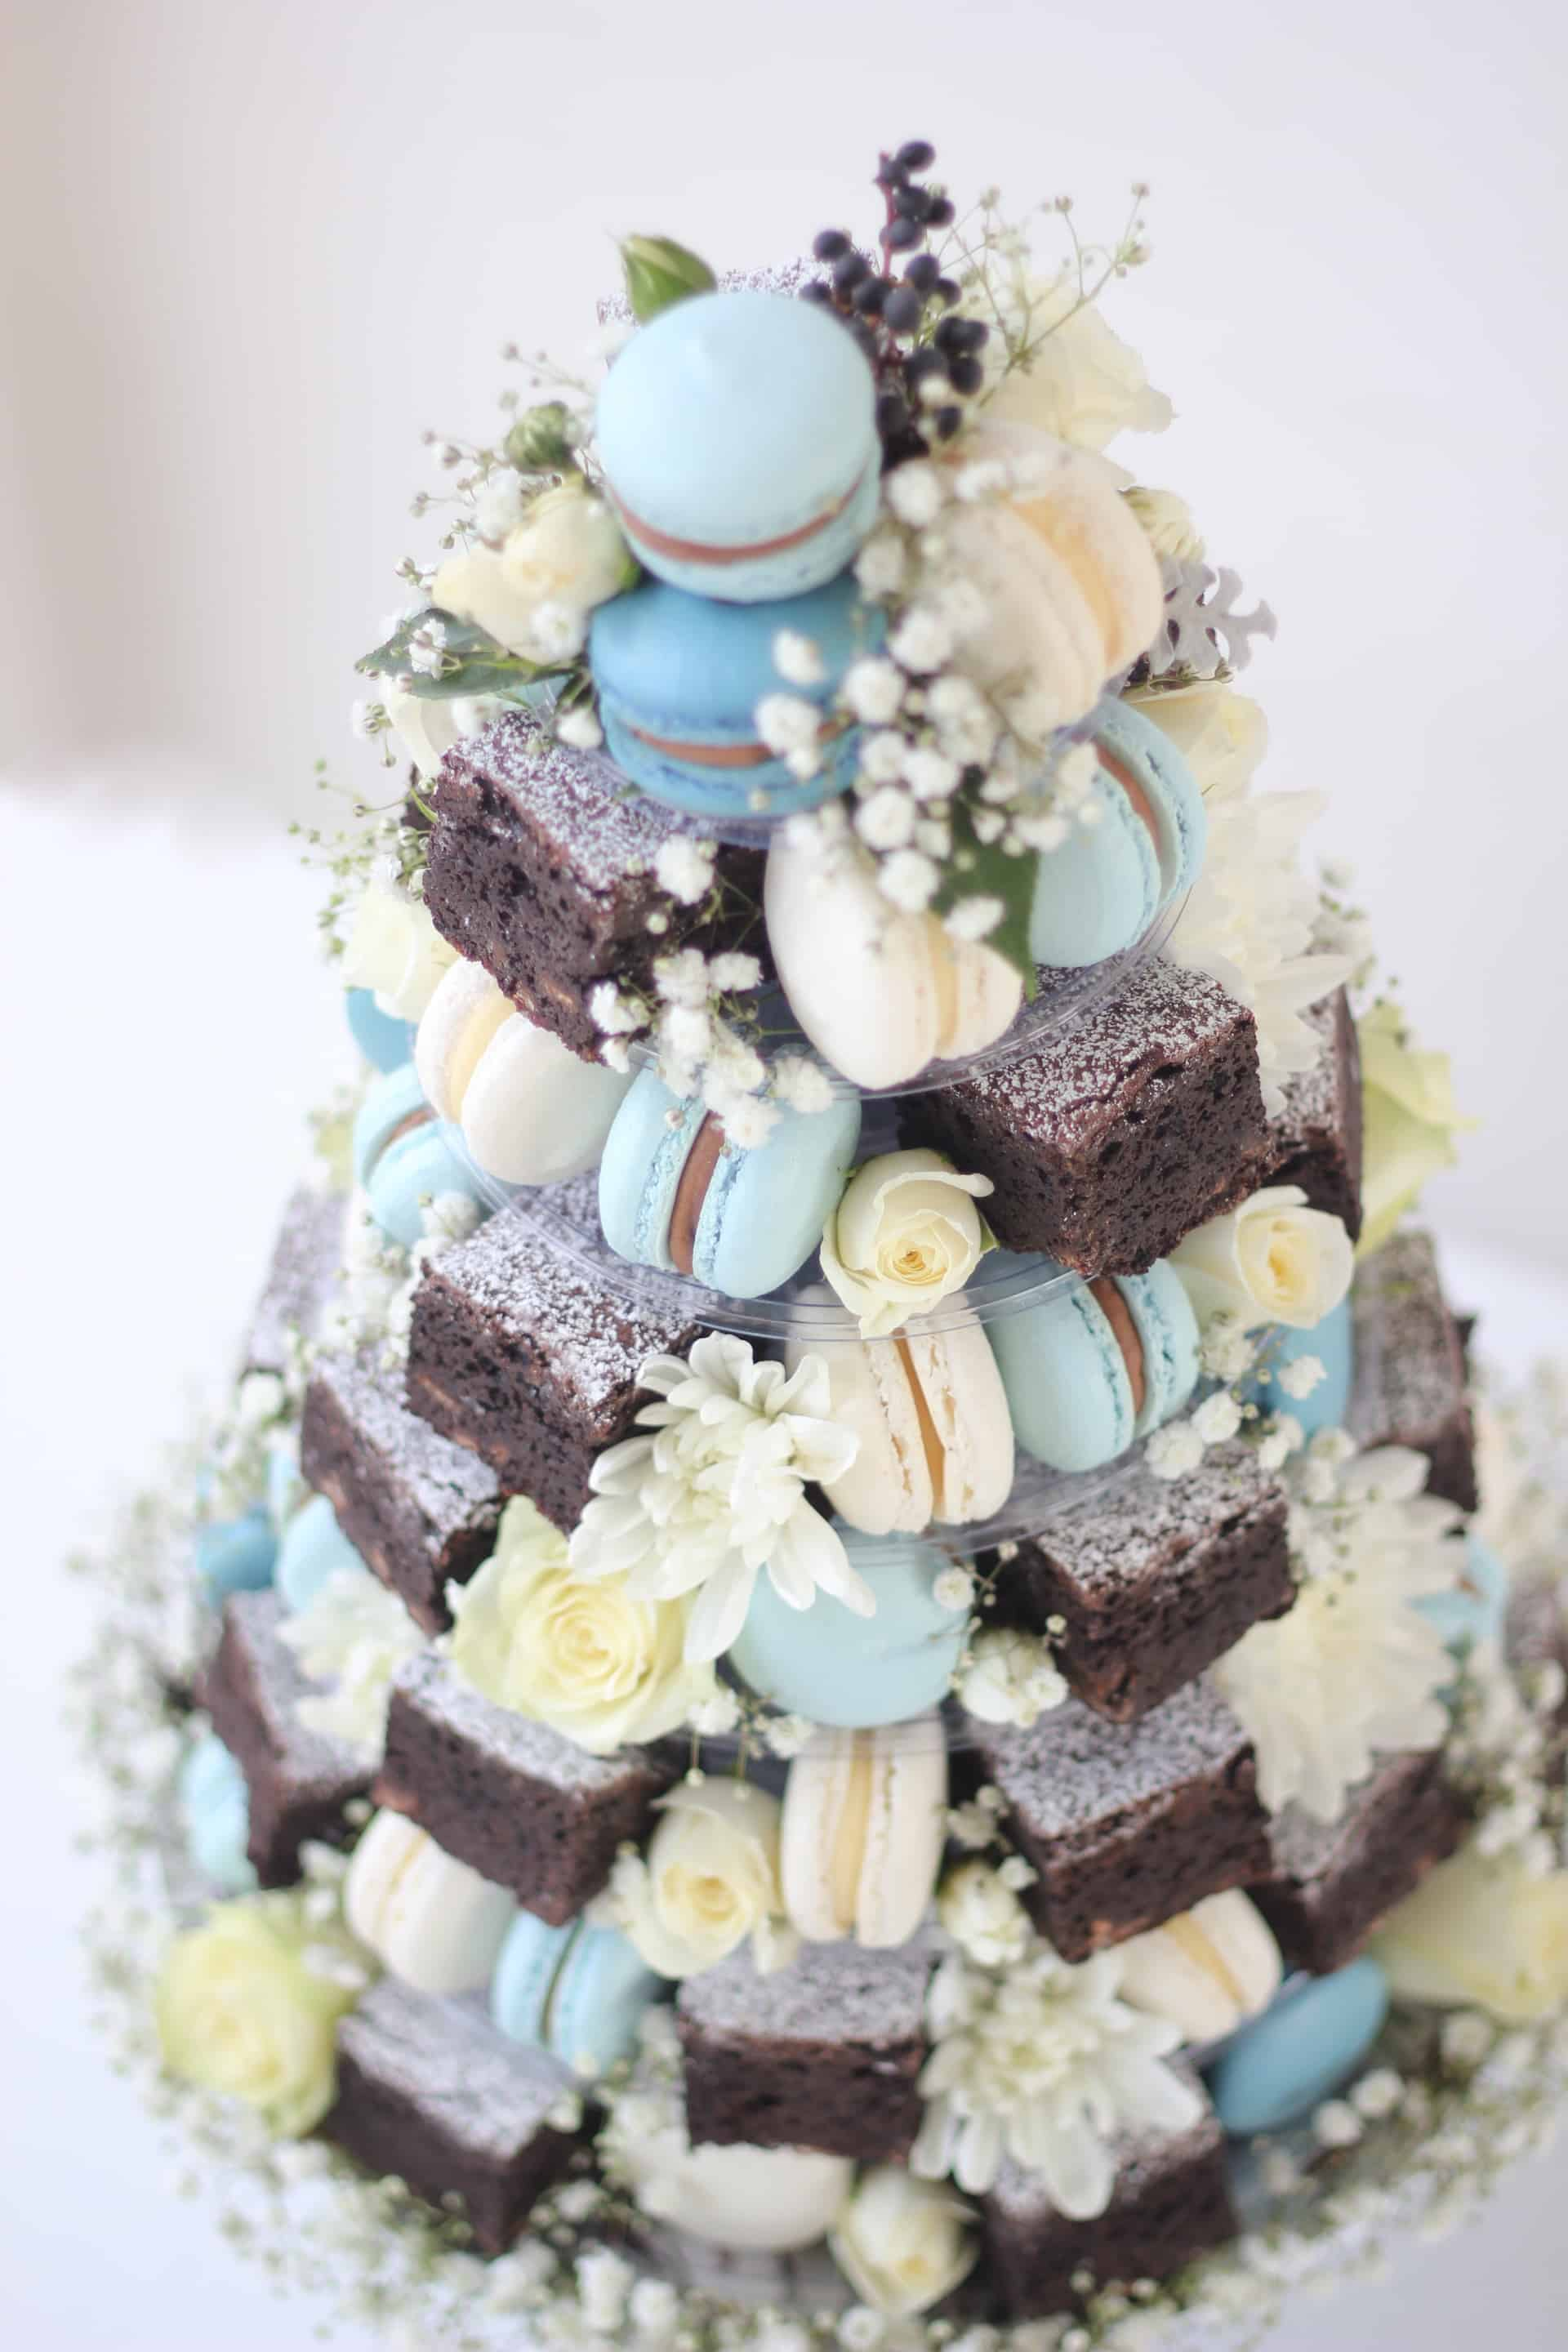 macarons, french macarons, brownies, chocolate, cakes, cake towers